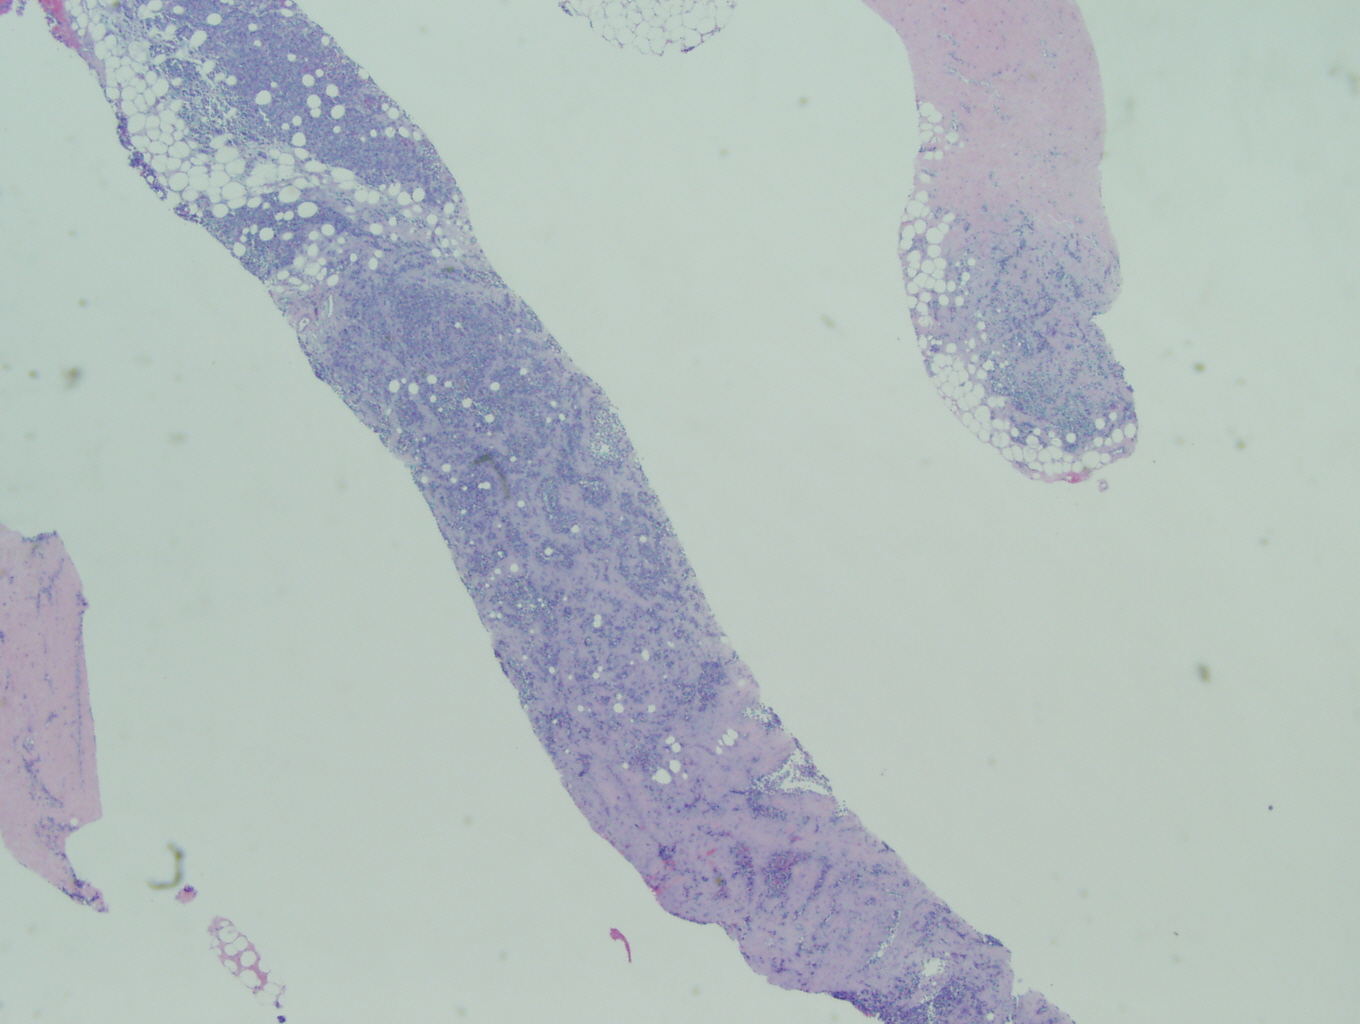 Microscopic image 1- Biopsy from breat mass 2x (Click to enlarge)